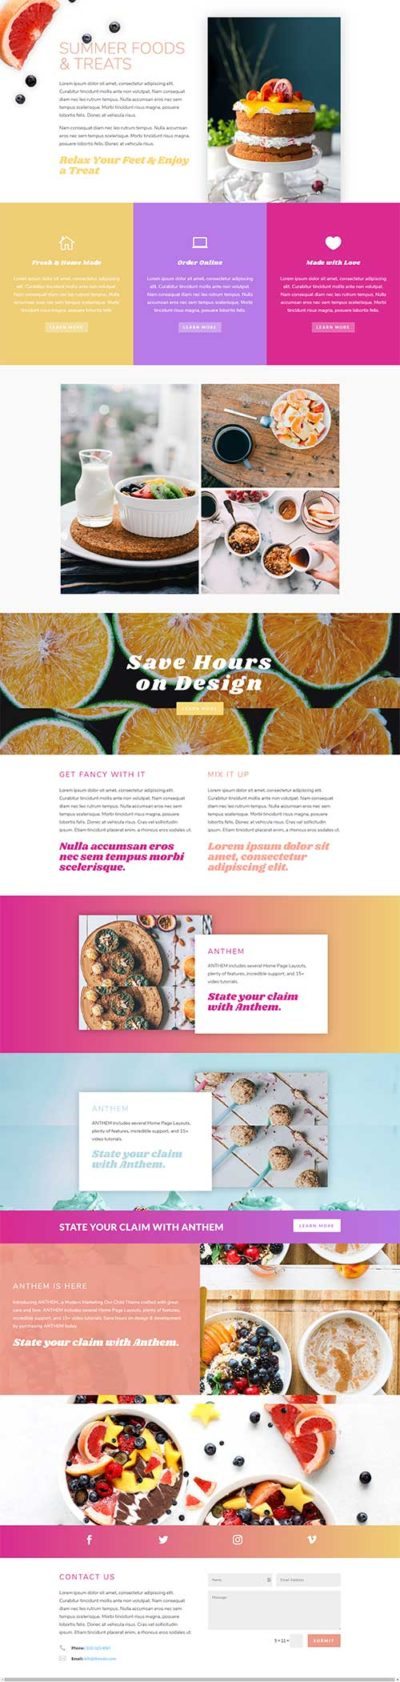 anthem foods layout divi theme